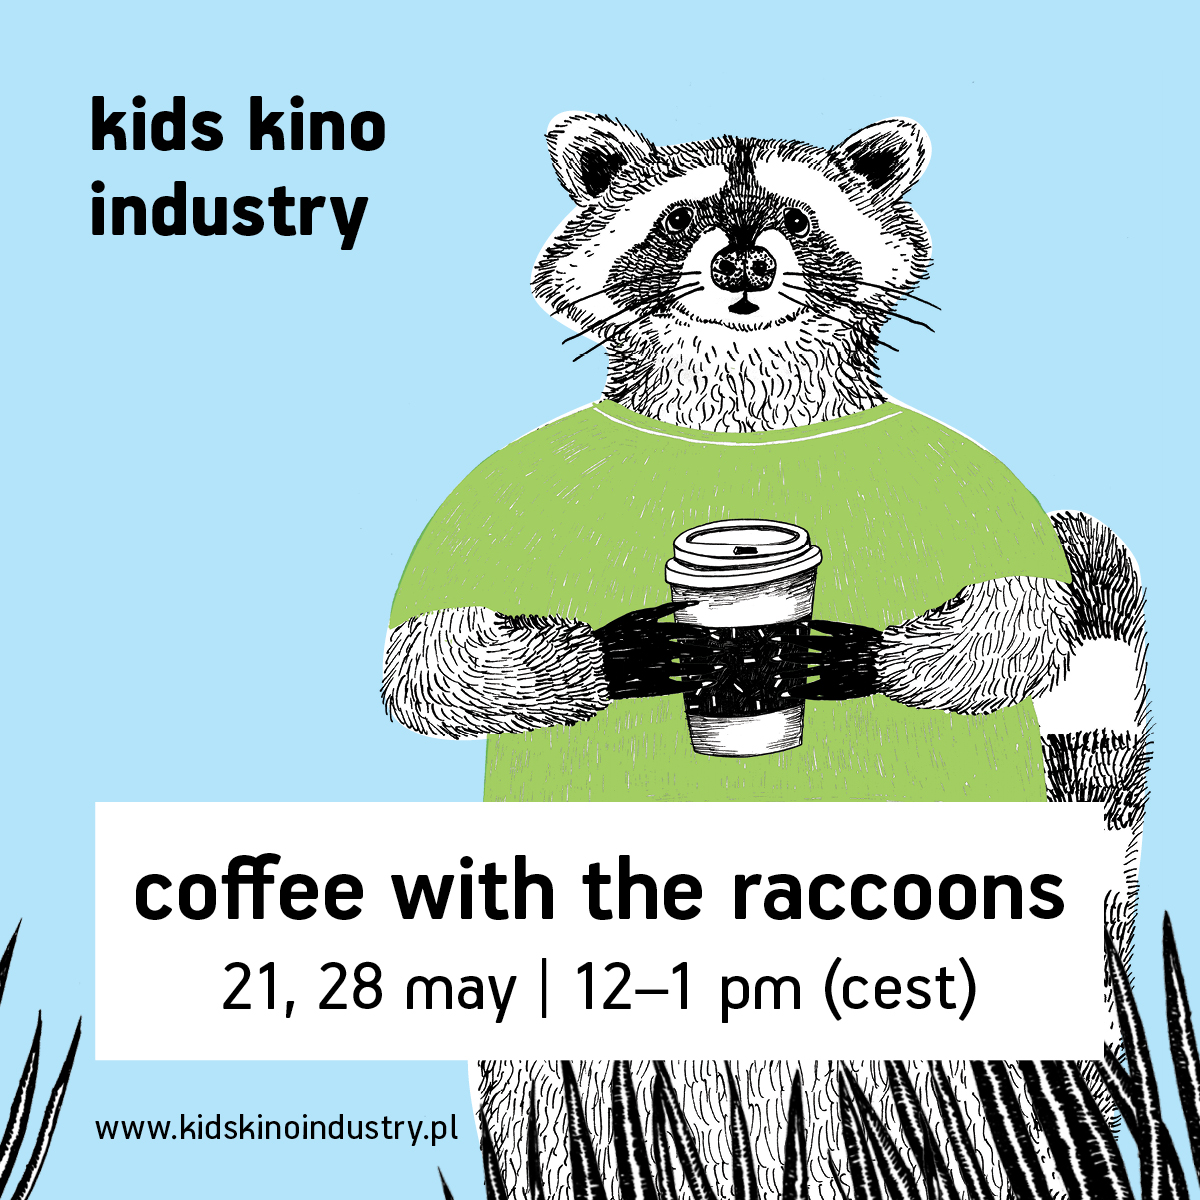 Coffee with the raccoons